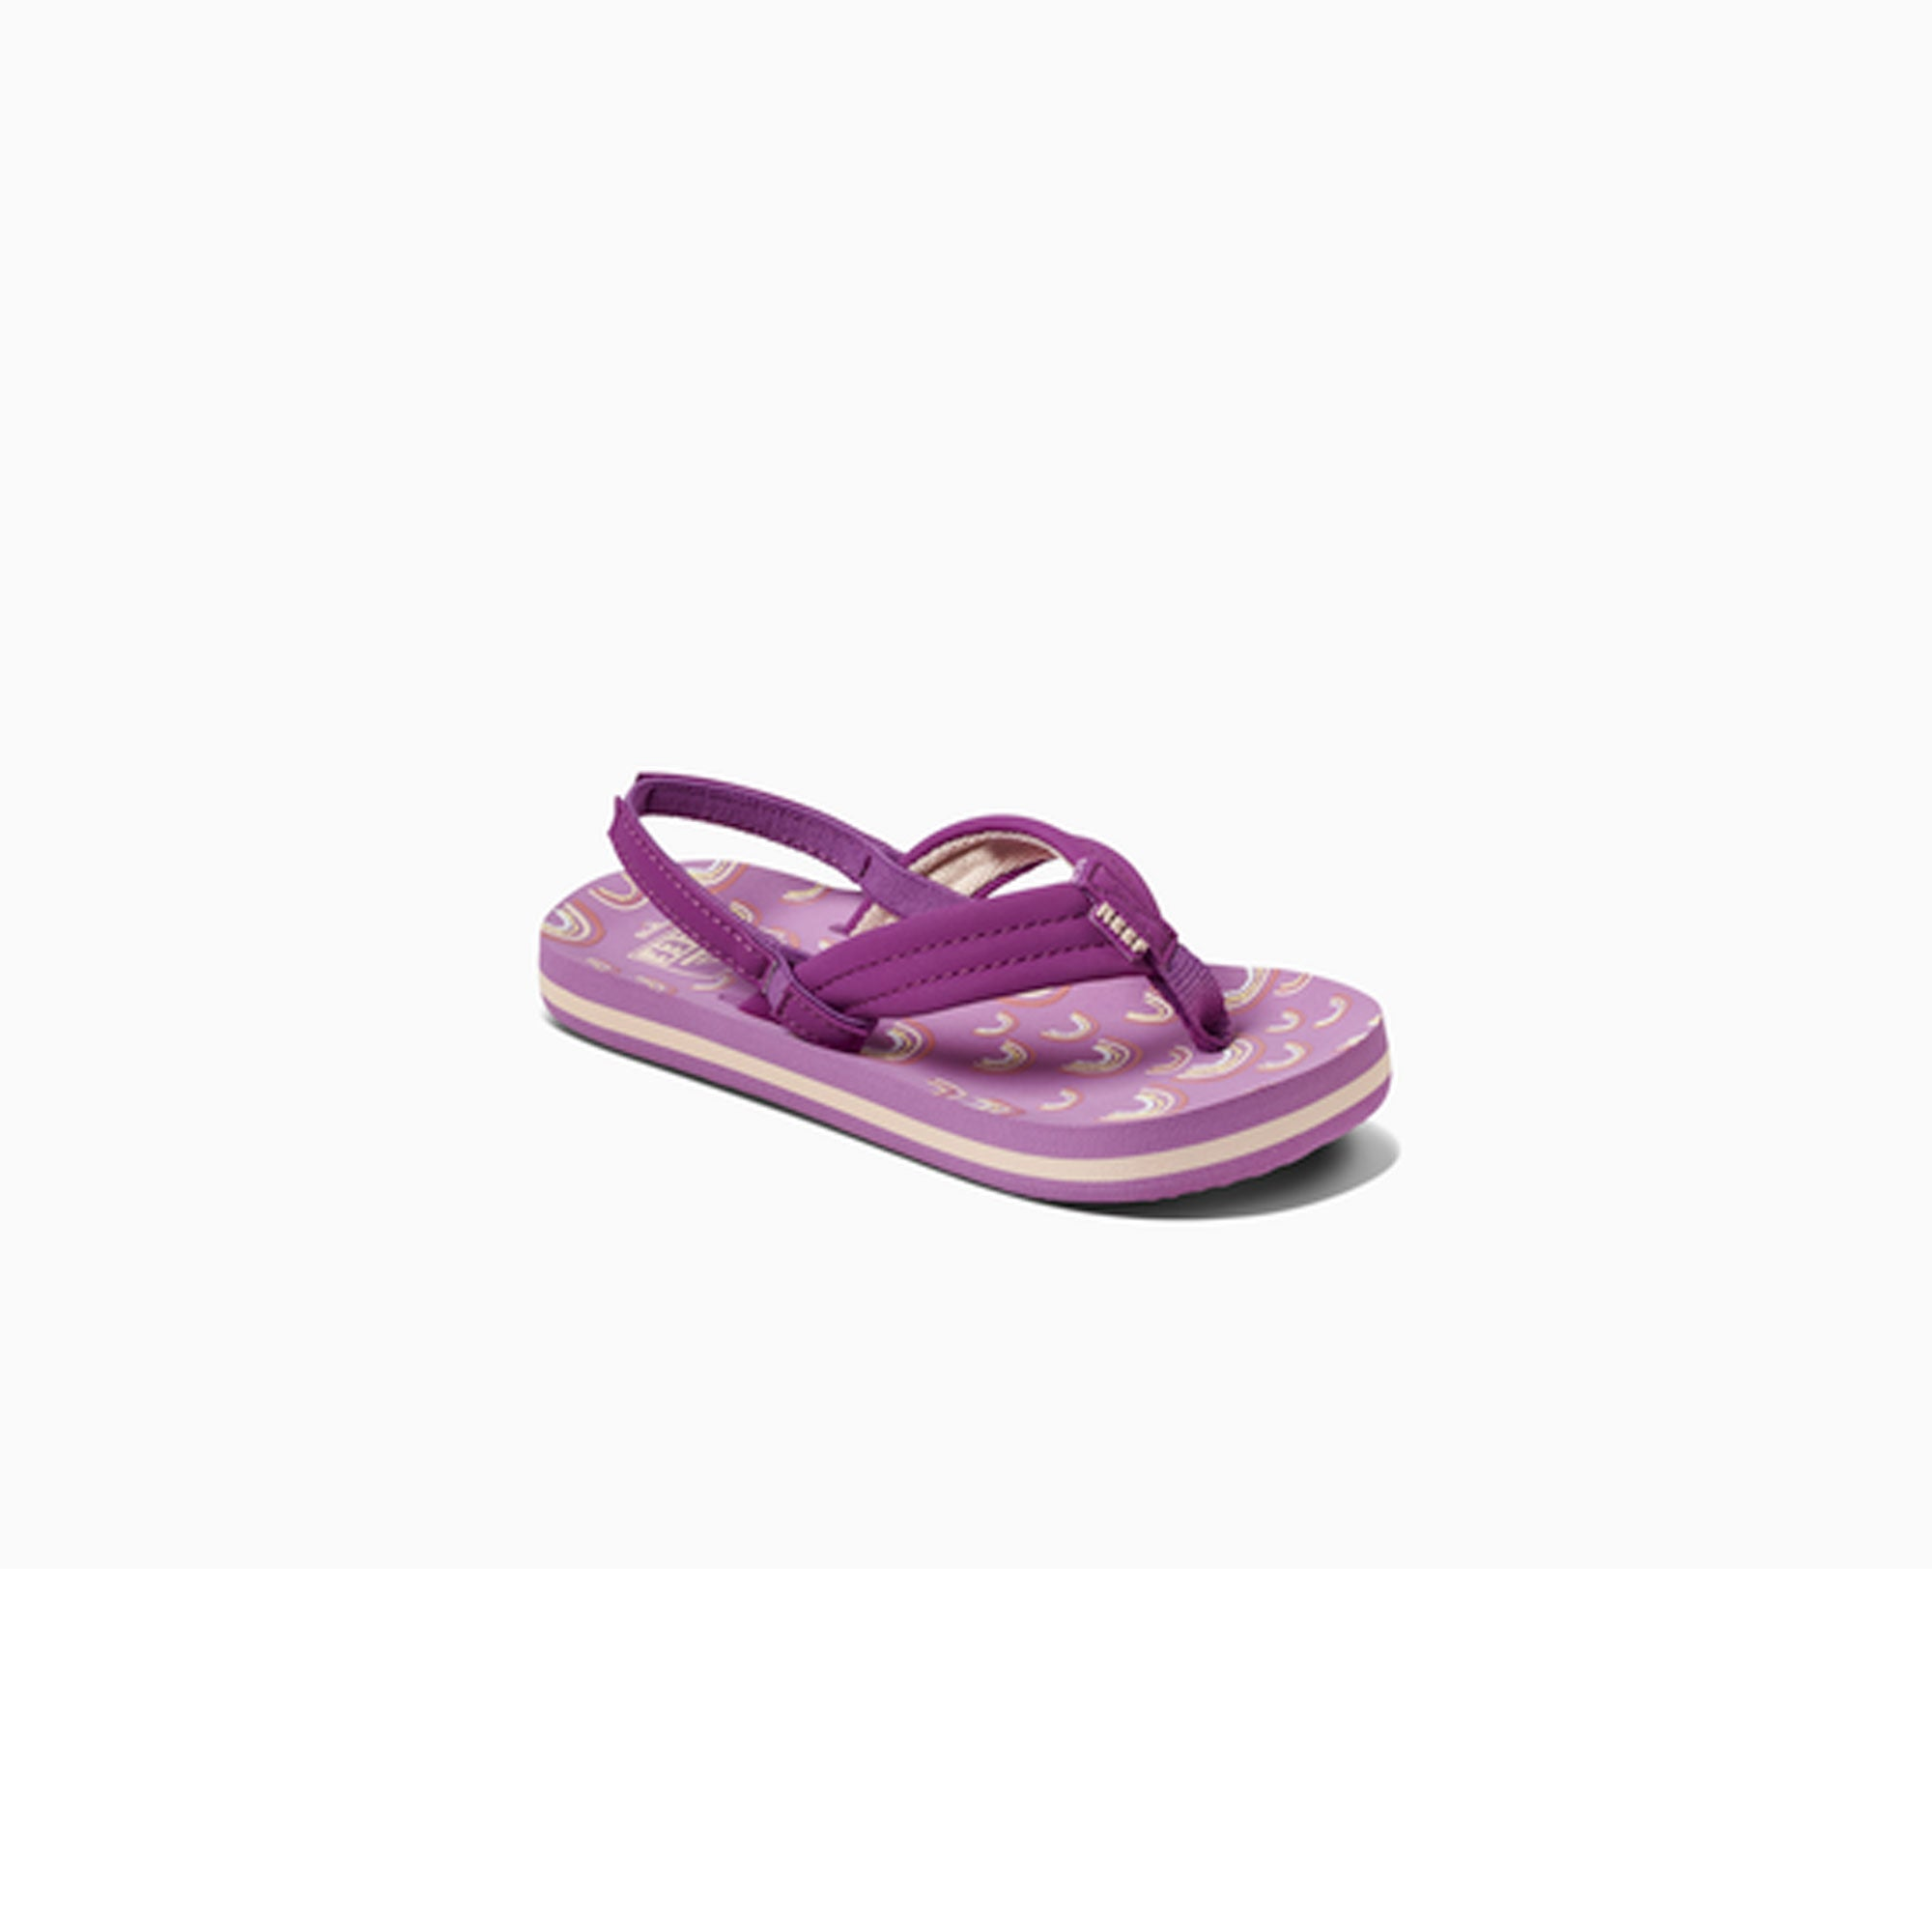 Reef Little Ahi Youth Girl's Sandals - Purple Rainbow